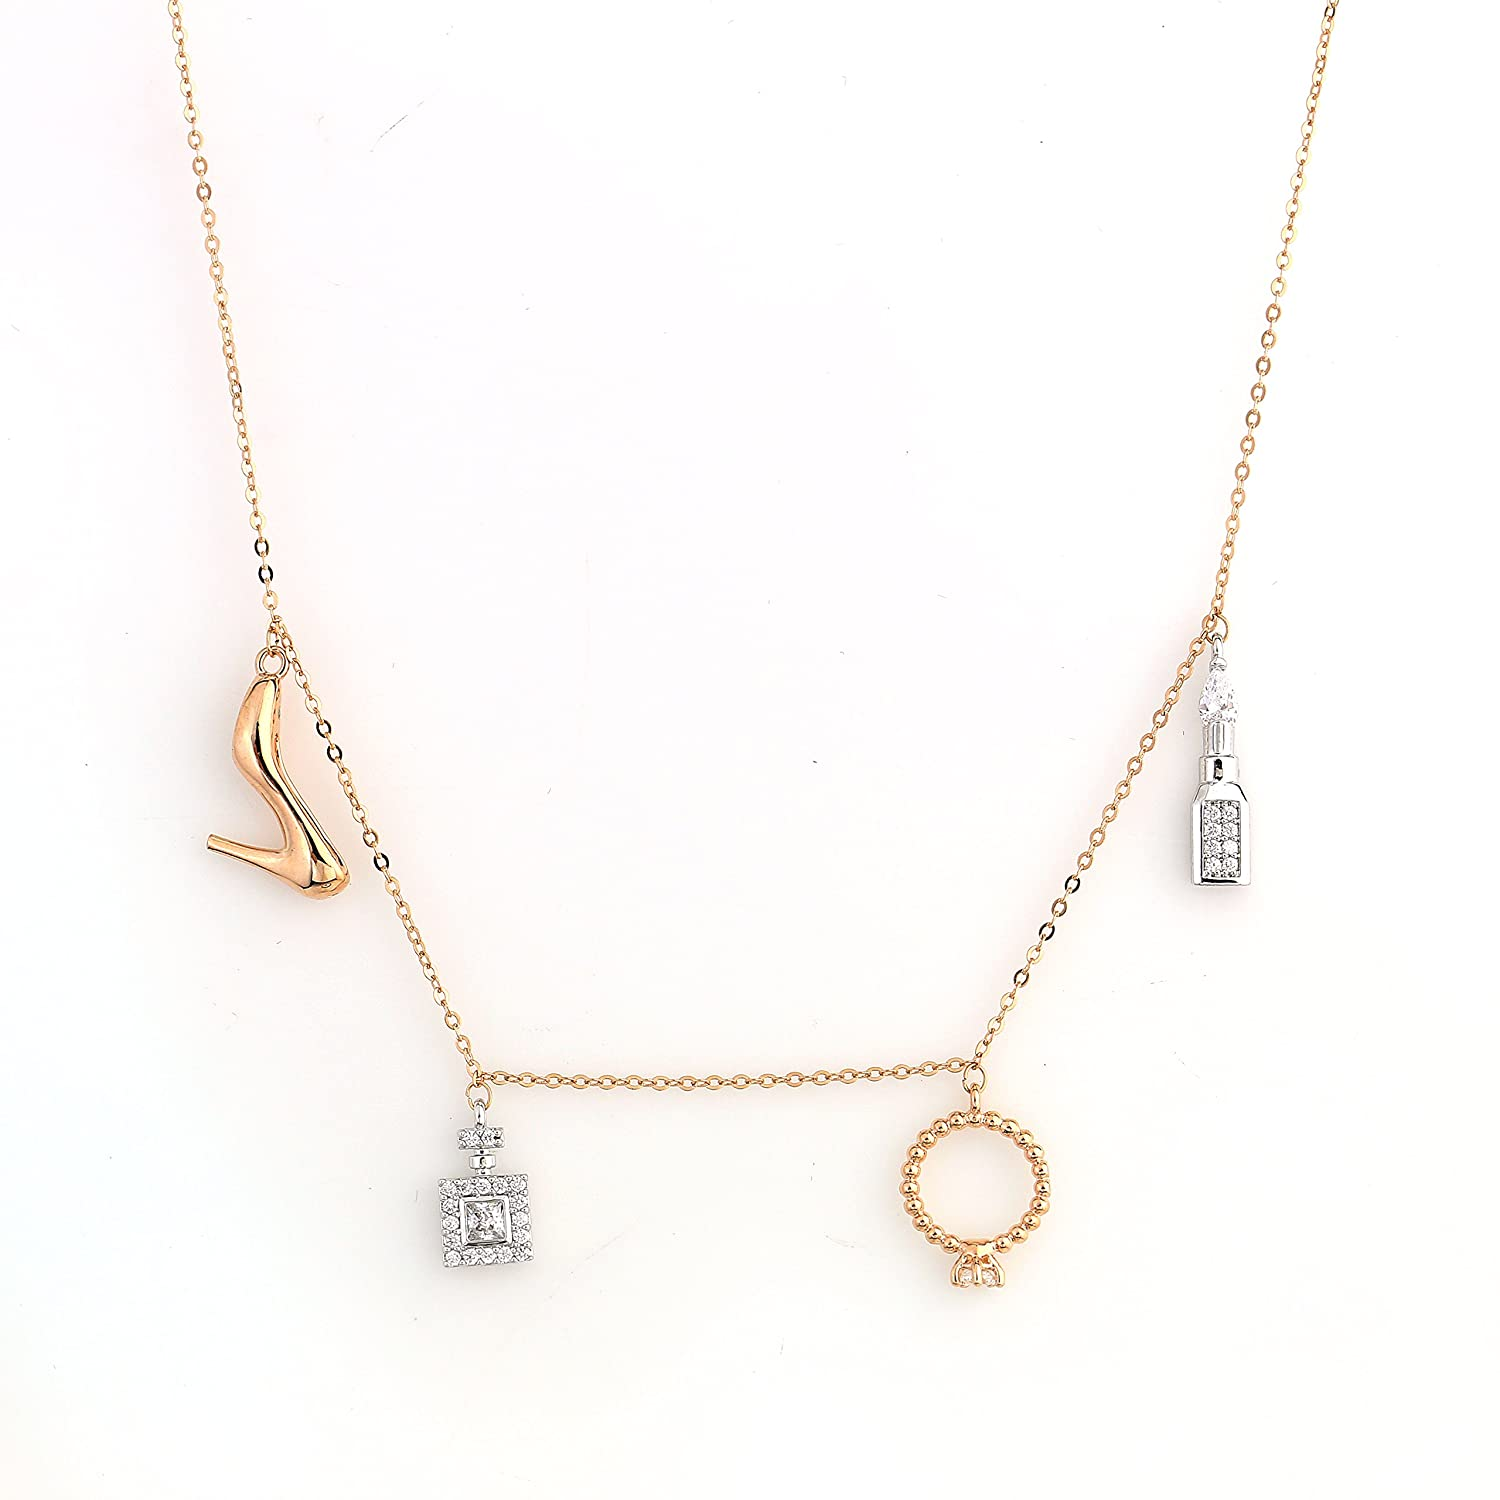 63303e1f01c2f1 UE Fun & Flirty Necklace Collection 1 - Trendy Rose, Gold, Silver Tone  Designer Necklace with Swarovski Style Crystals in Various Designs - Sun,  Moon, ...